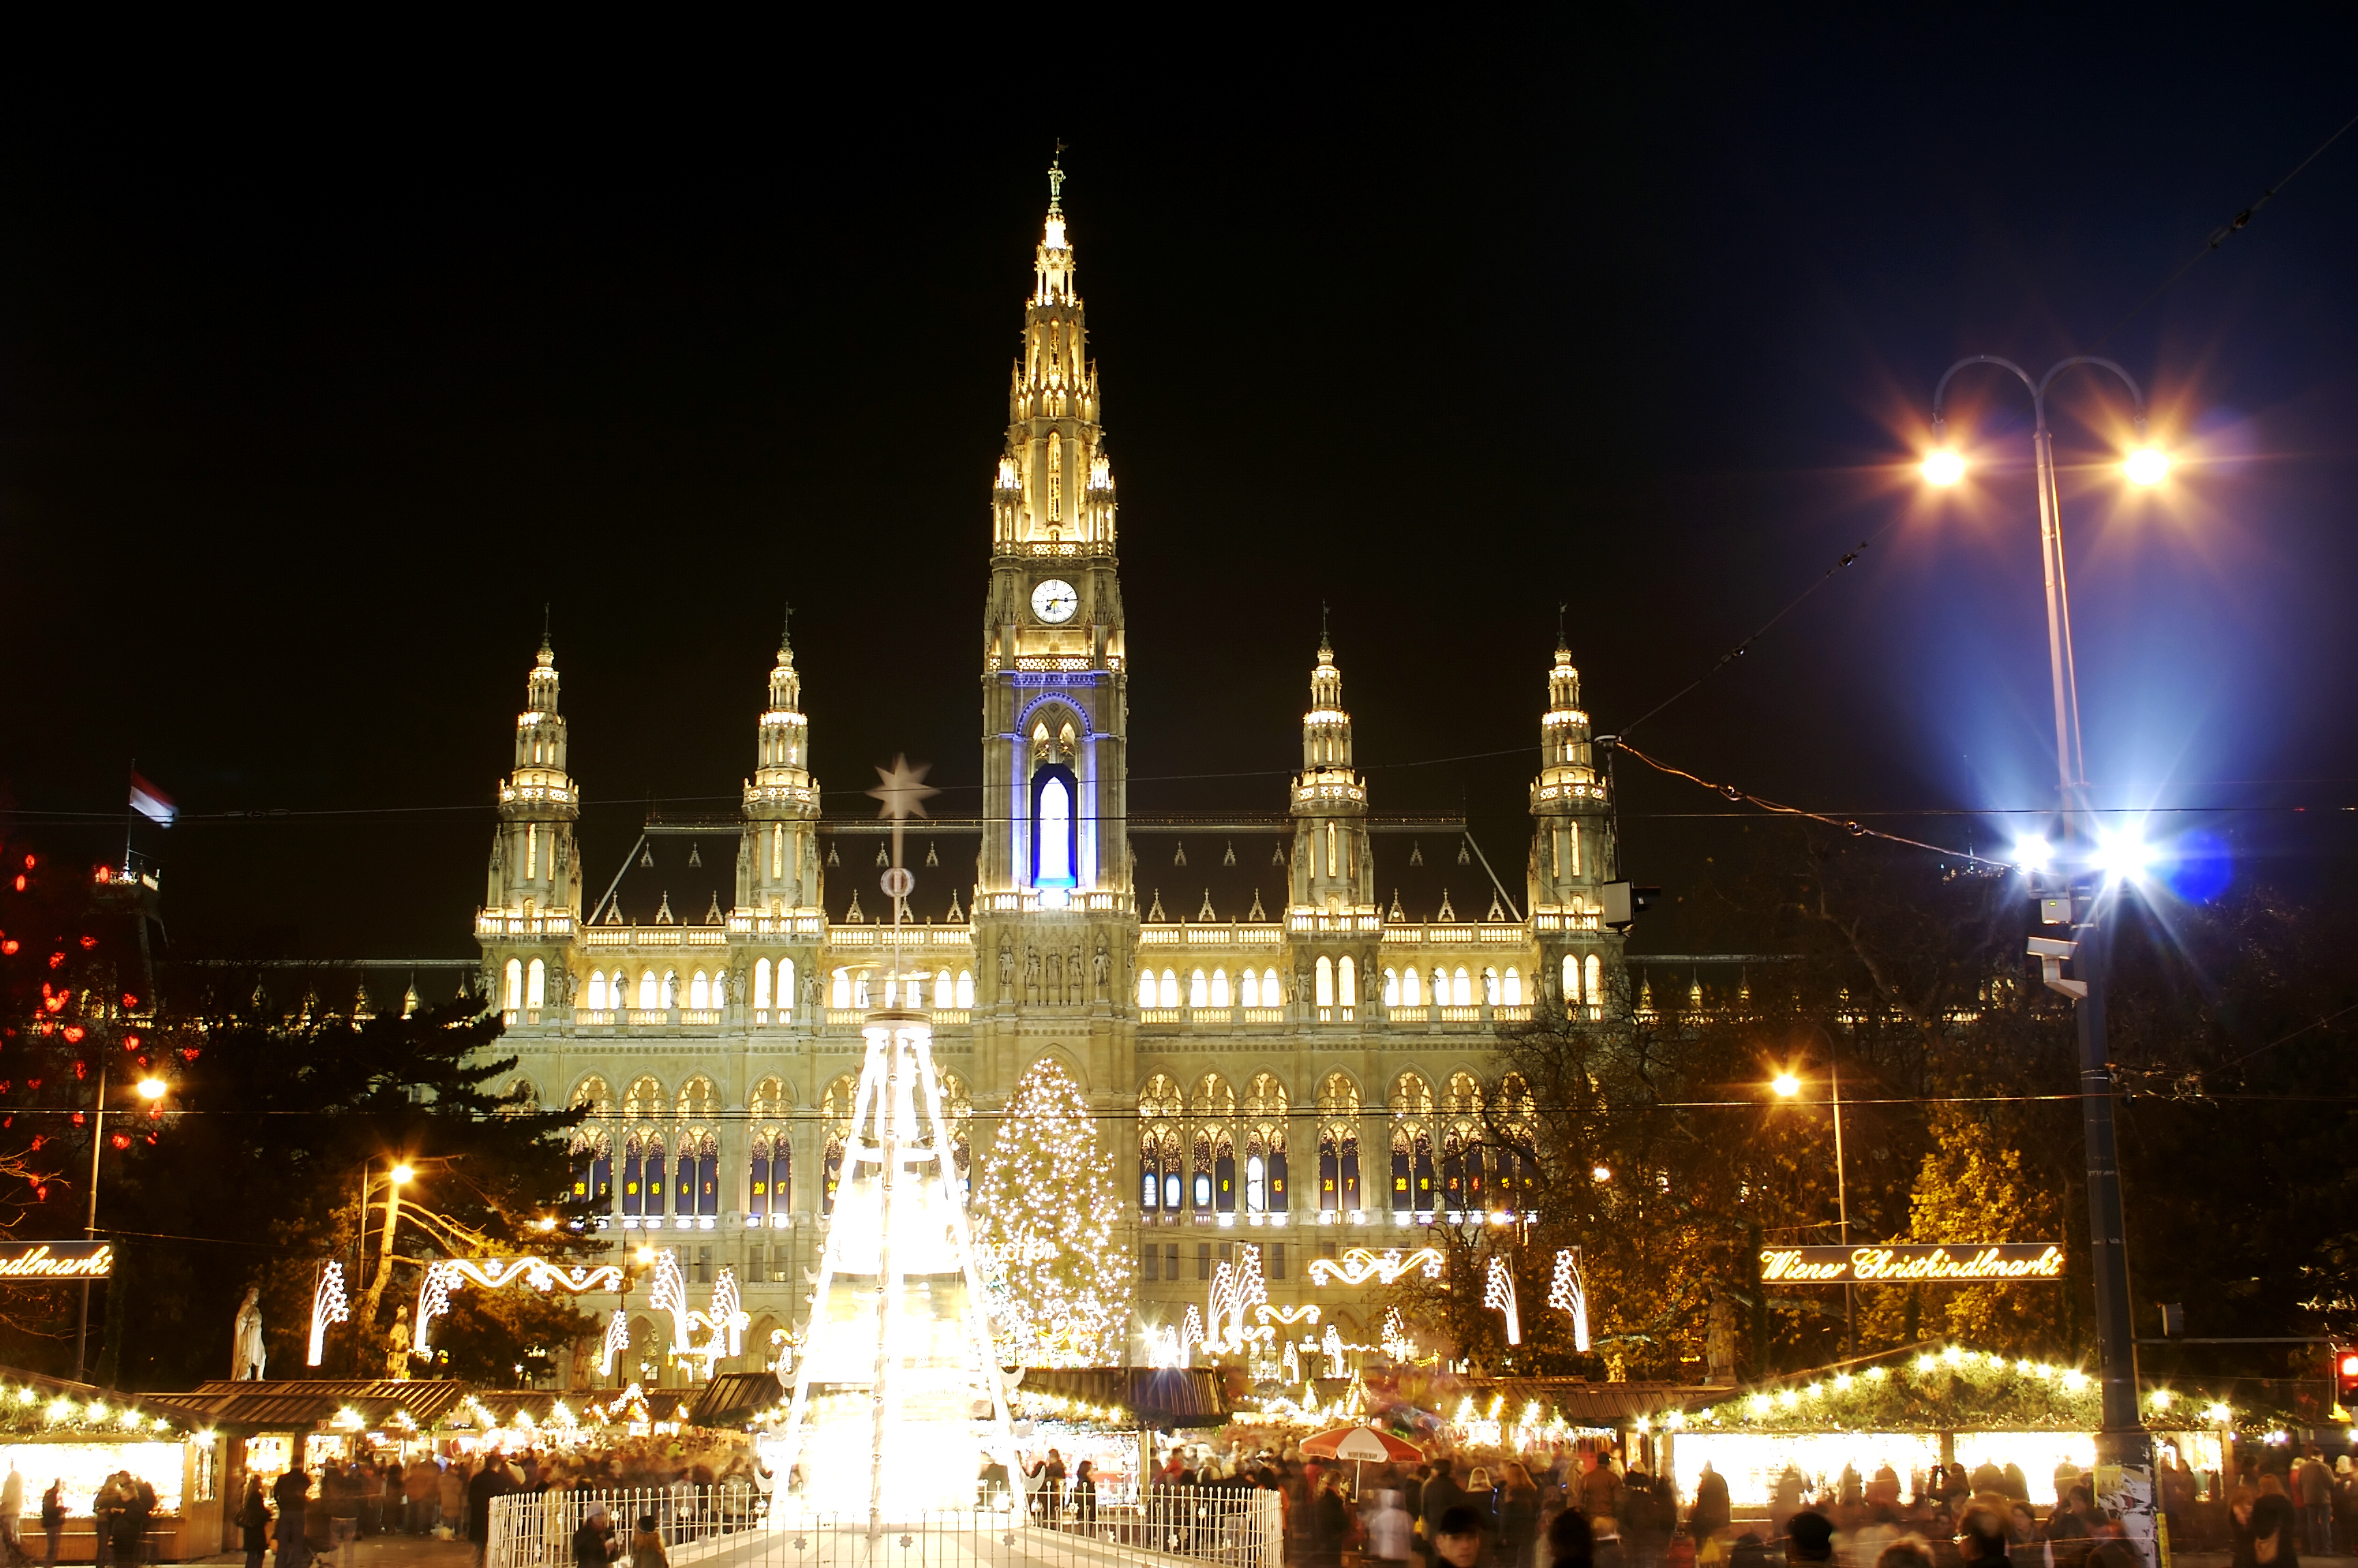 Christkindlmakrt-Vienna - Places to Visit During the Holidays